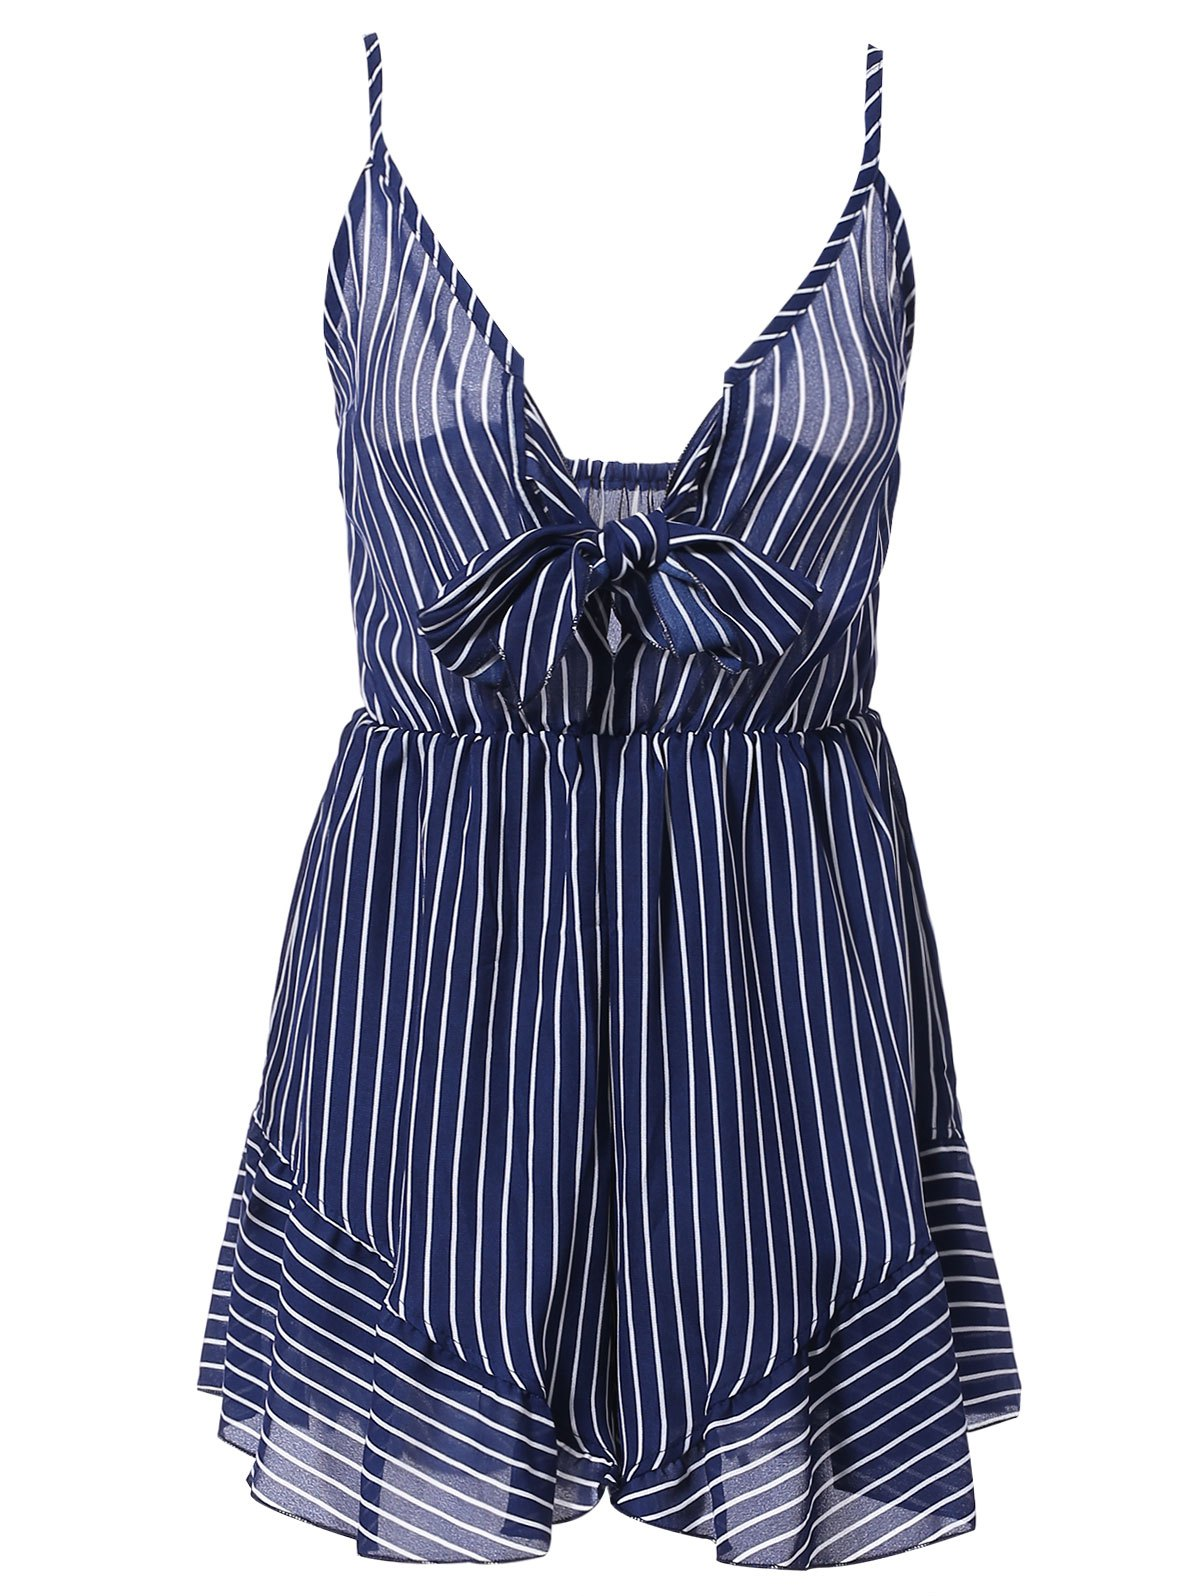 Chic Women's Plunging Neck Striped Design Flounce Romper - STRIPE ONE SIZE(FIT SIZE XS TO M)